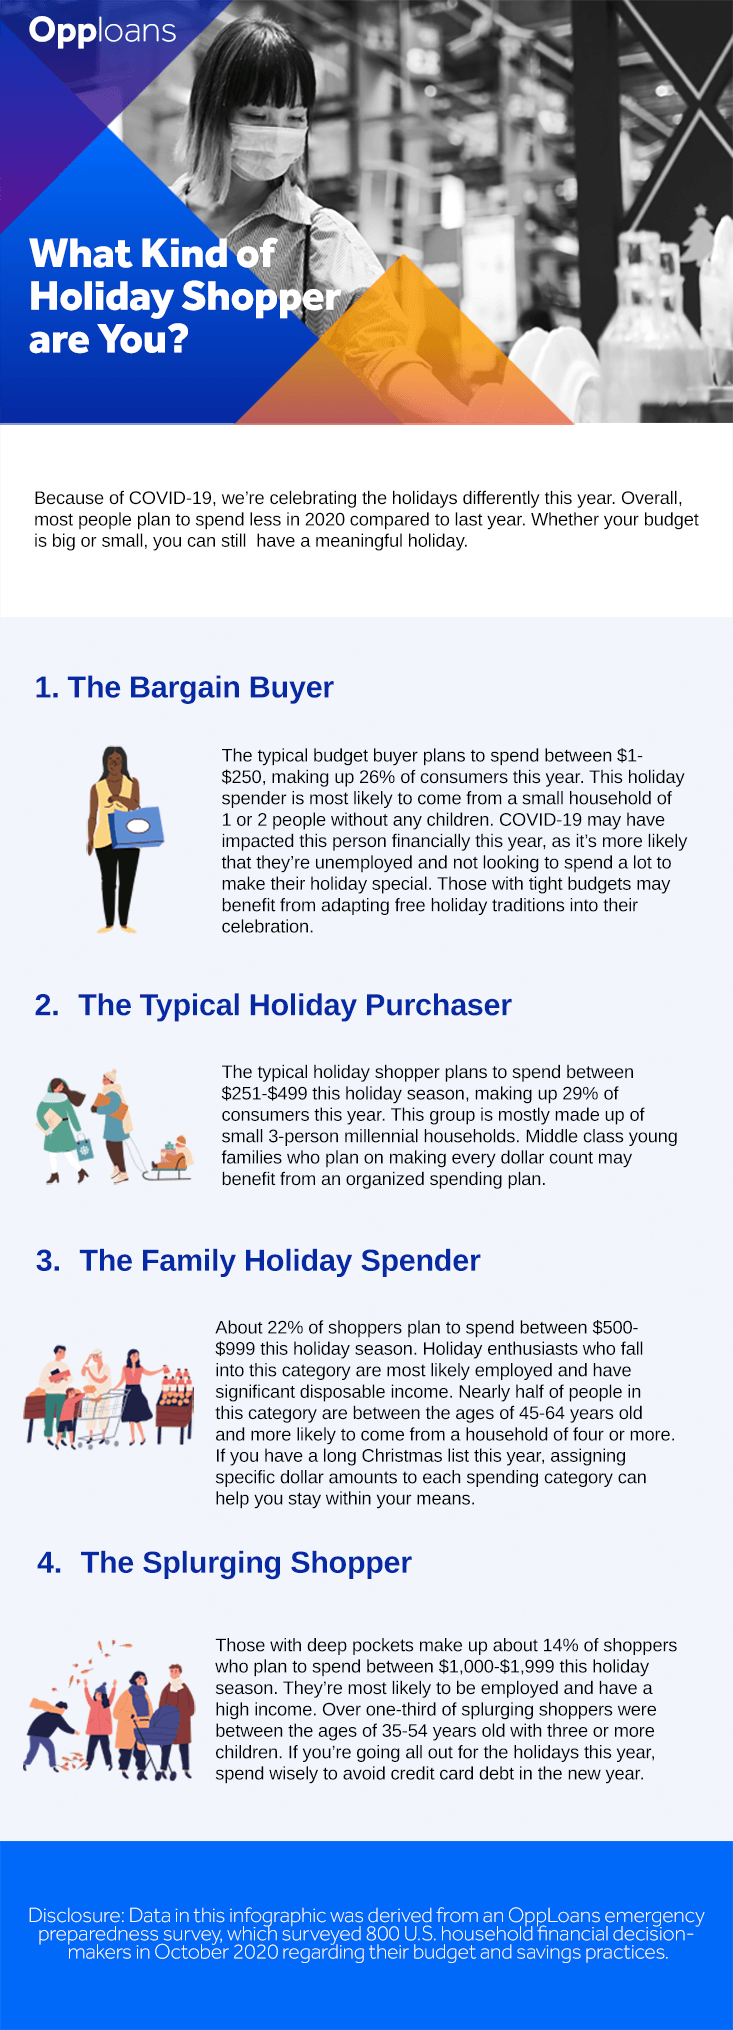 What Kind of Holiday Shopper Are You?